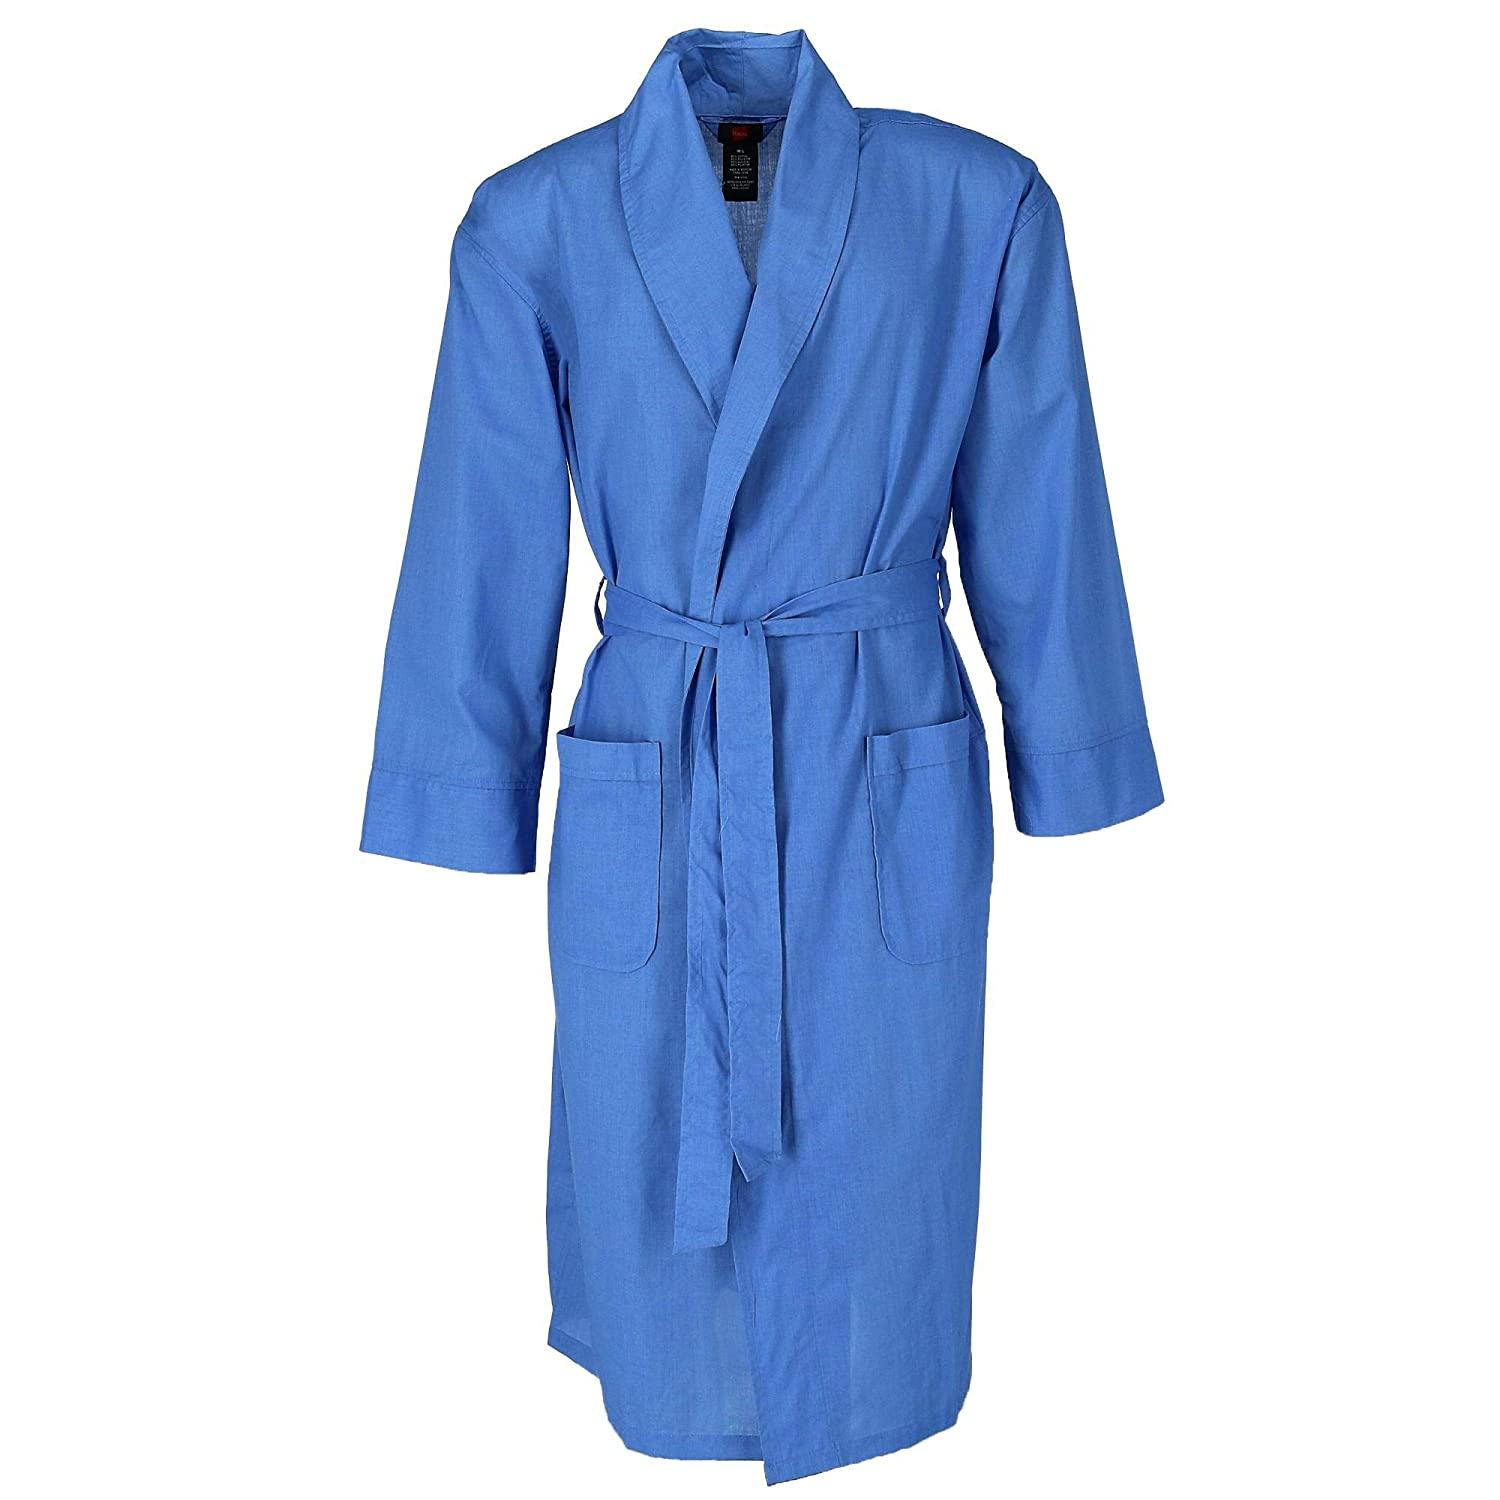 Hanes Men's Big and Tall Lightweight Woven Dressing Gown